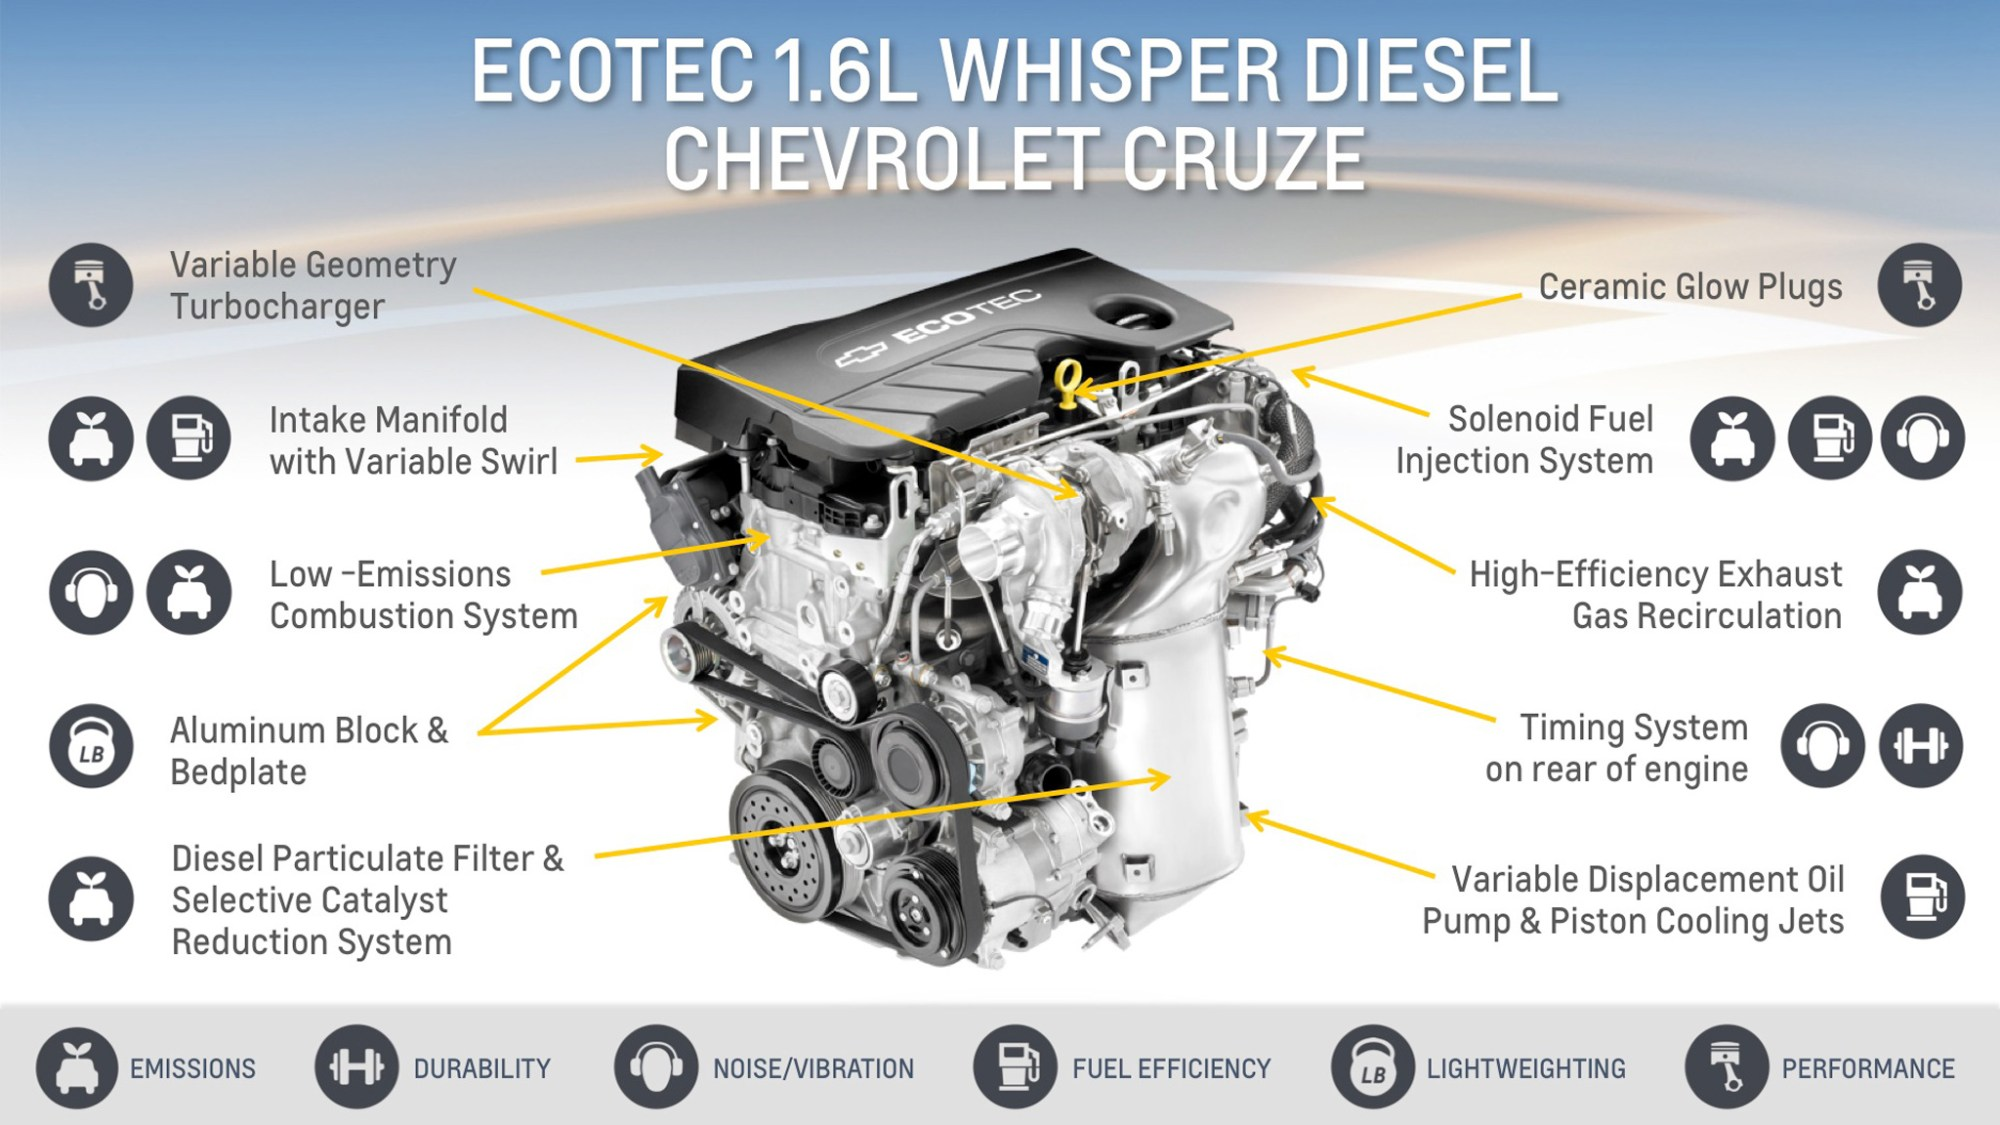 hight resolution of general motors 1 6 liter turbo diesel ecotec lh7 engine chevrolet cruze diesel details